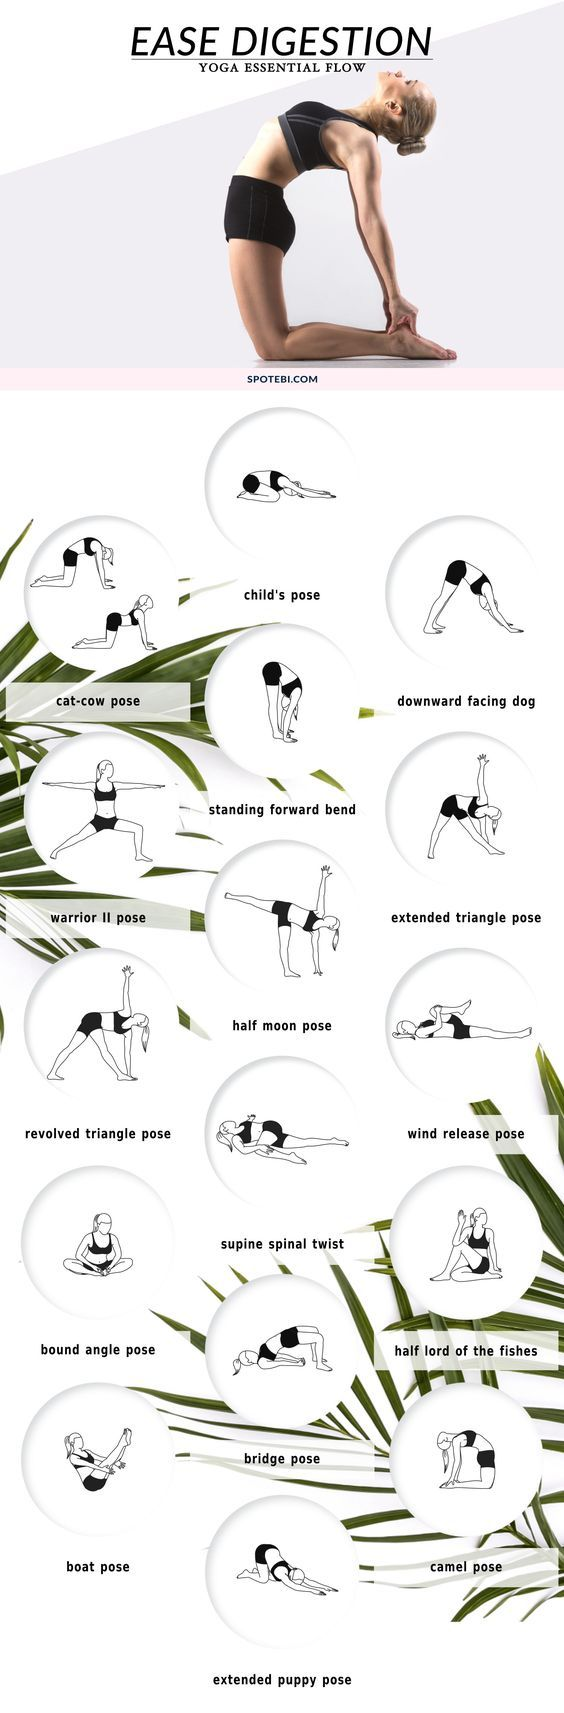 Boost digestion, relieve constipation and de-bloat with this 20-minute yoga essential flow. Pair these 17 yoga poses with deep breathing to massage the abdominal organs, increase circulation and get things moving! http://www.spotebi.com/yoga-sequences/ease-digestion/